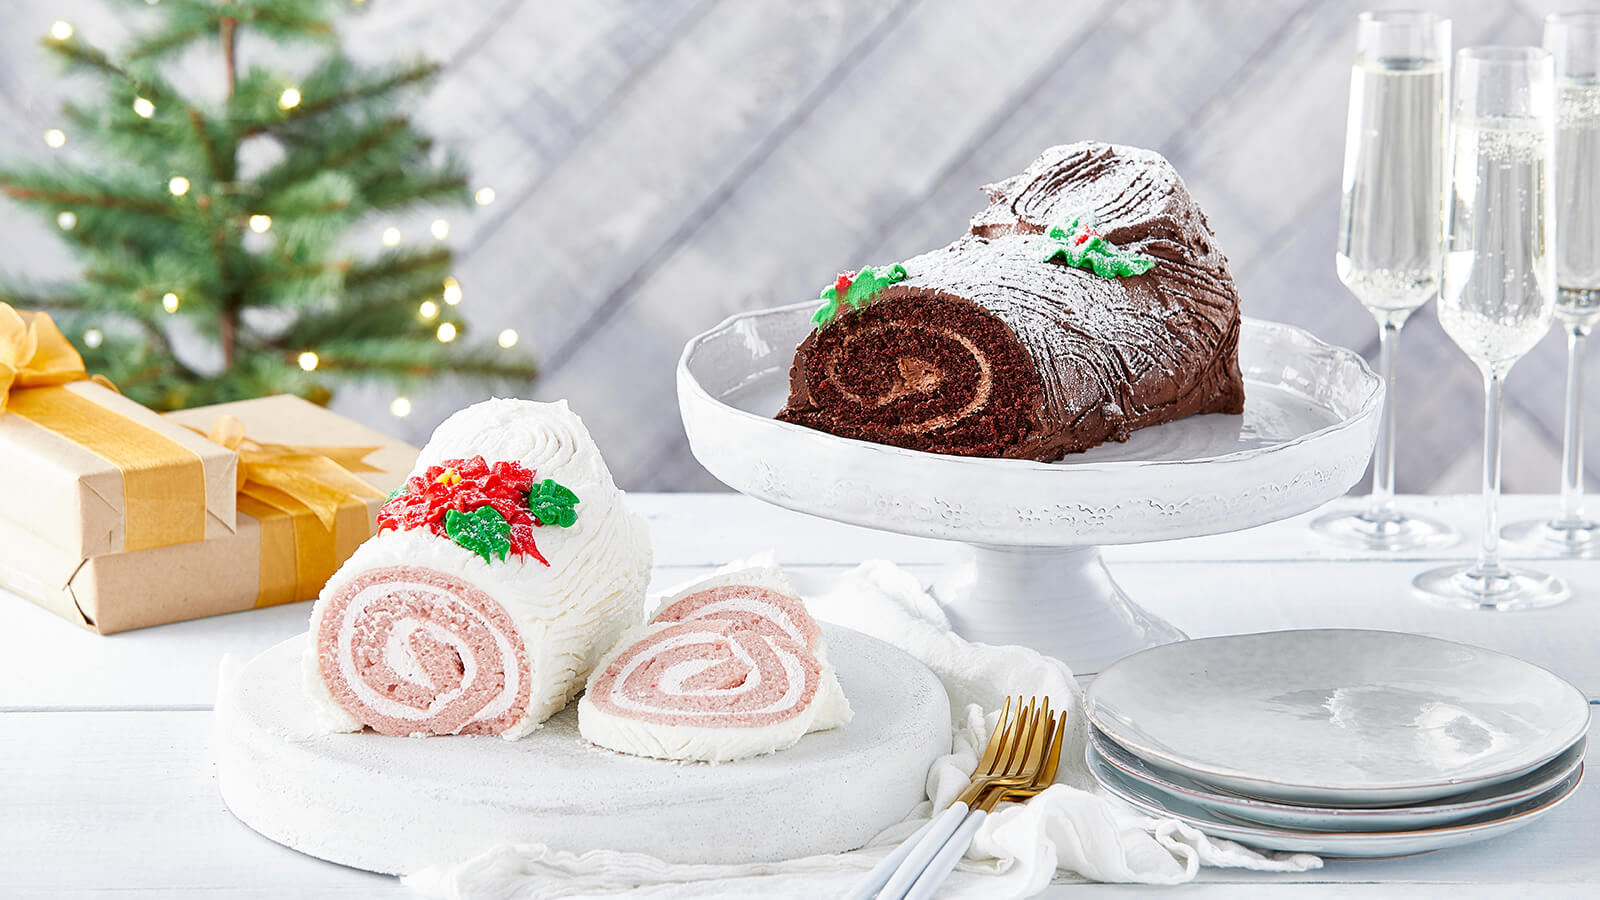 Chocolate and Raspberry Yule Log